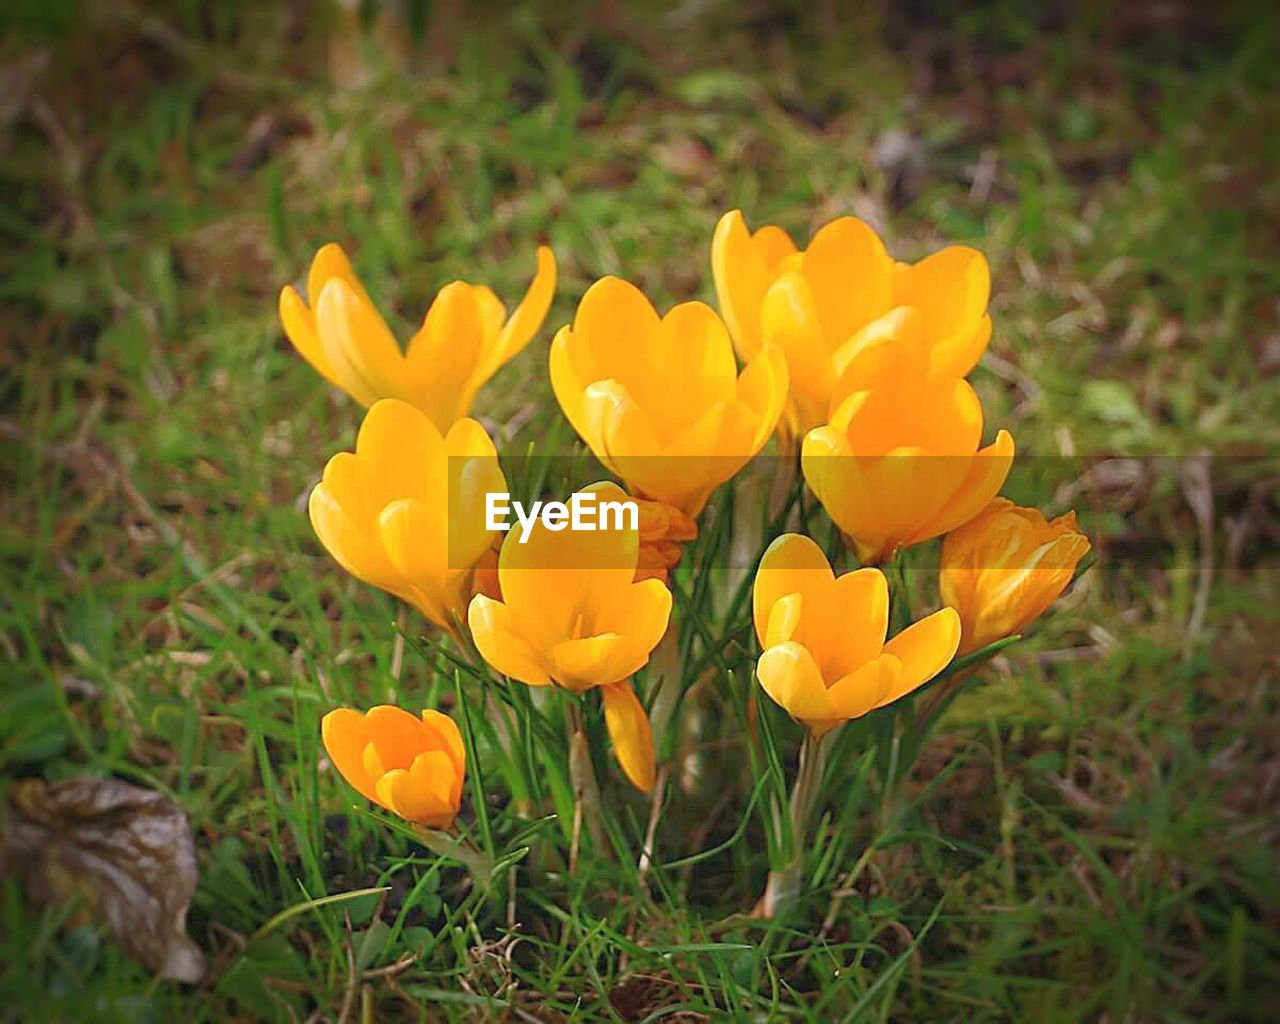 flower, nature, yellow, petal, beauty in nature, growth, plant, fragility, field, freshness, outdoors, flower head, blooming, no people, vibrant color, blossom, springtime, day, close-up, grass, crocus